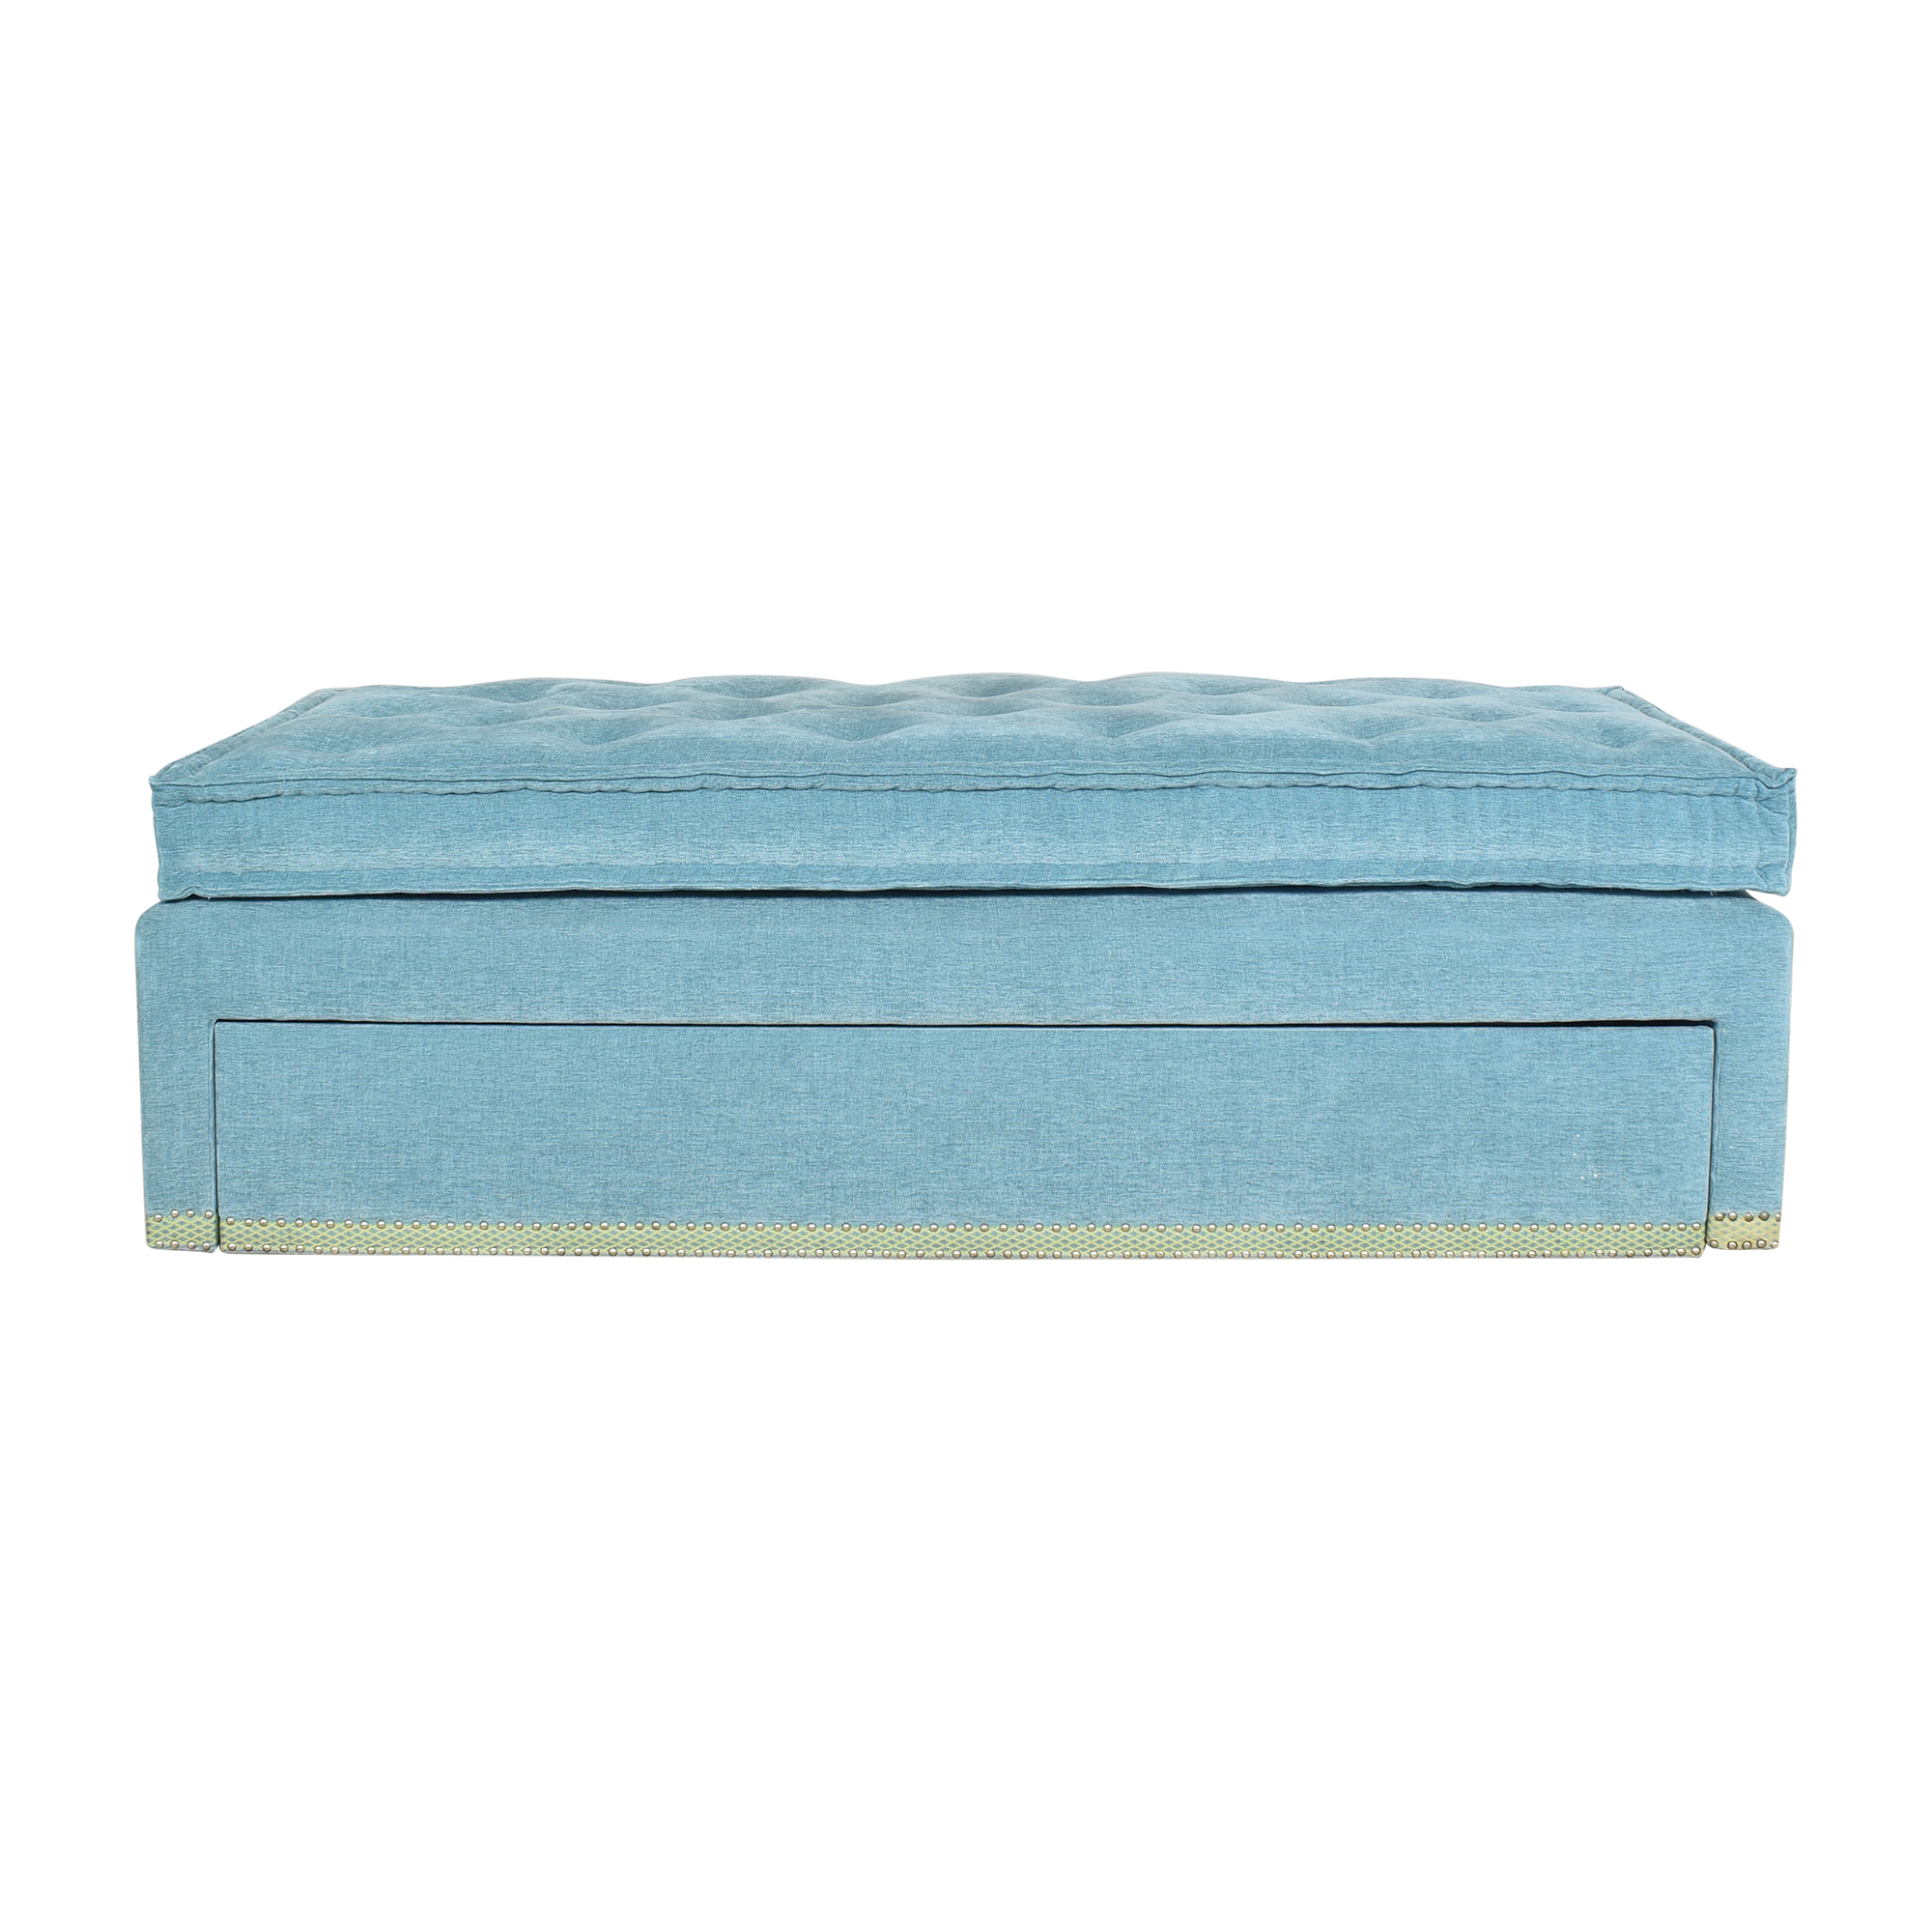 Charles H Beckley Daybed With Pop-Up Trundle sale